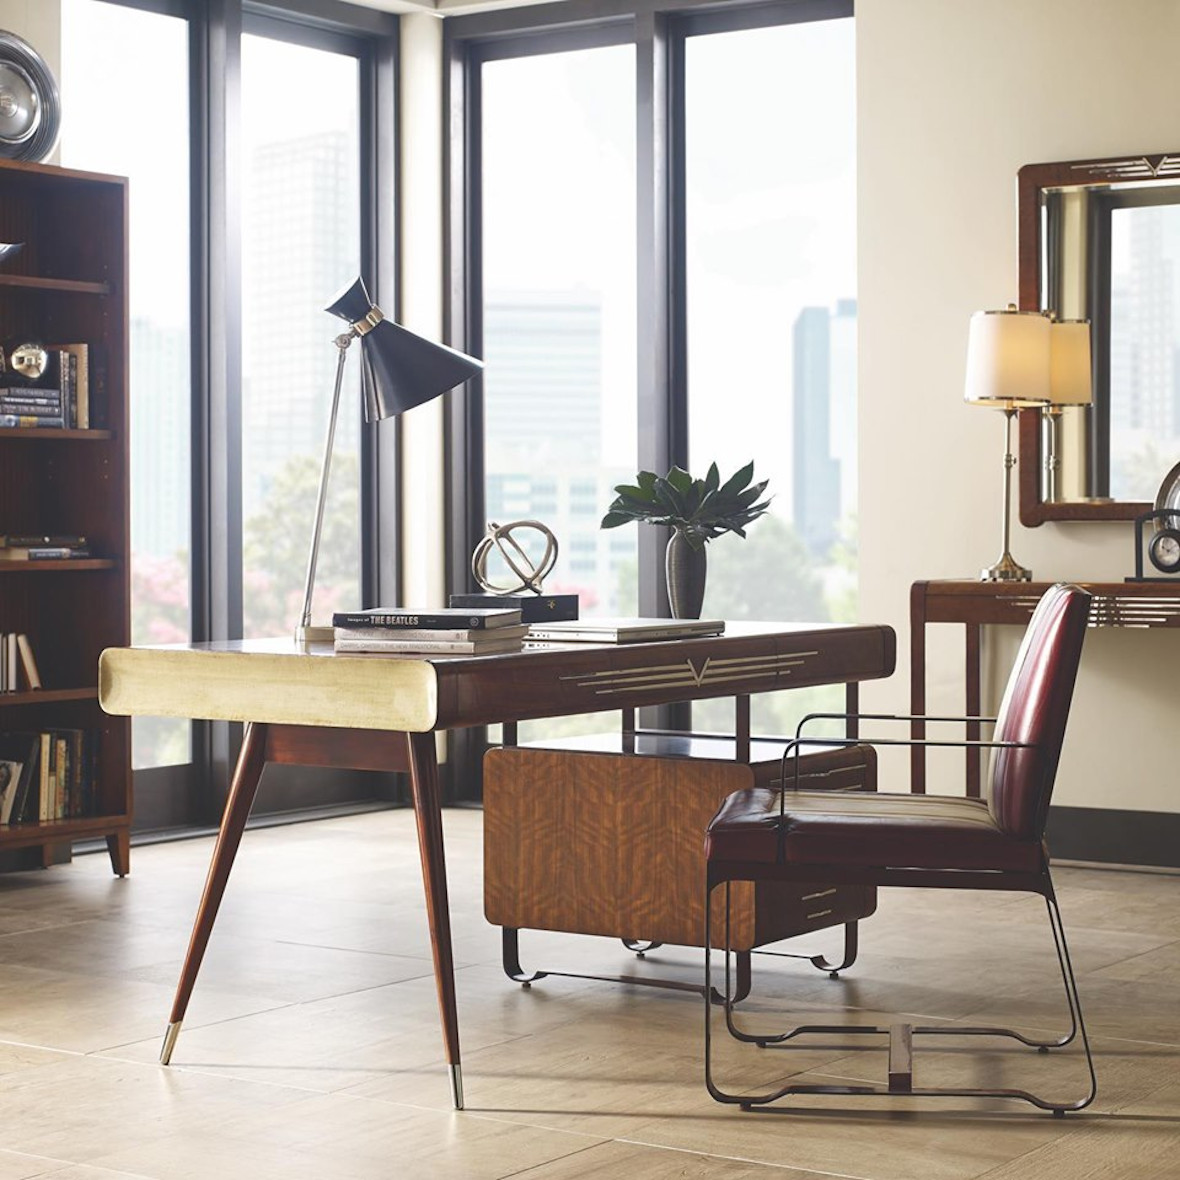 Jonathan Charles Home Office - Desk & Chair